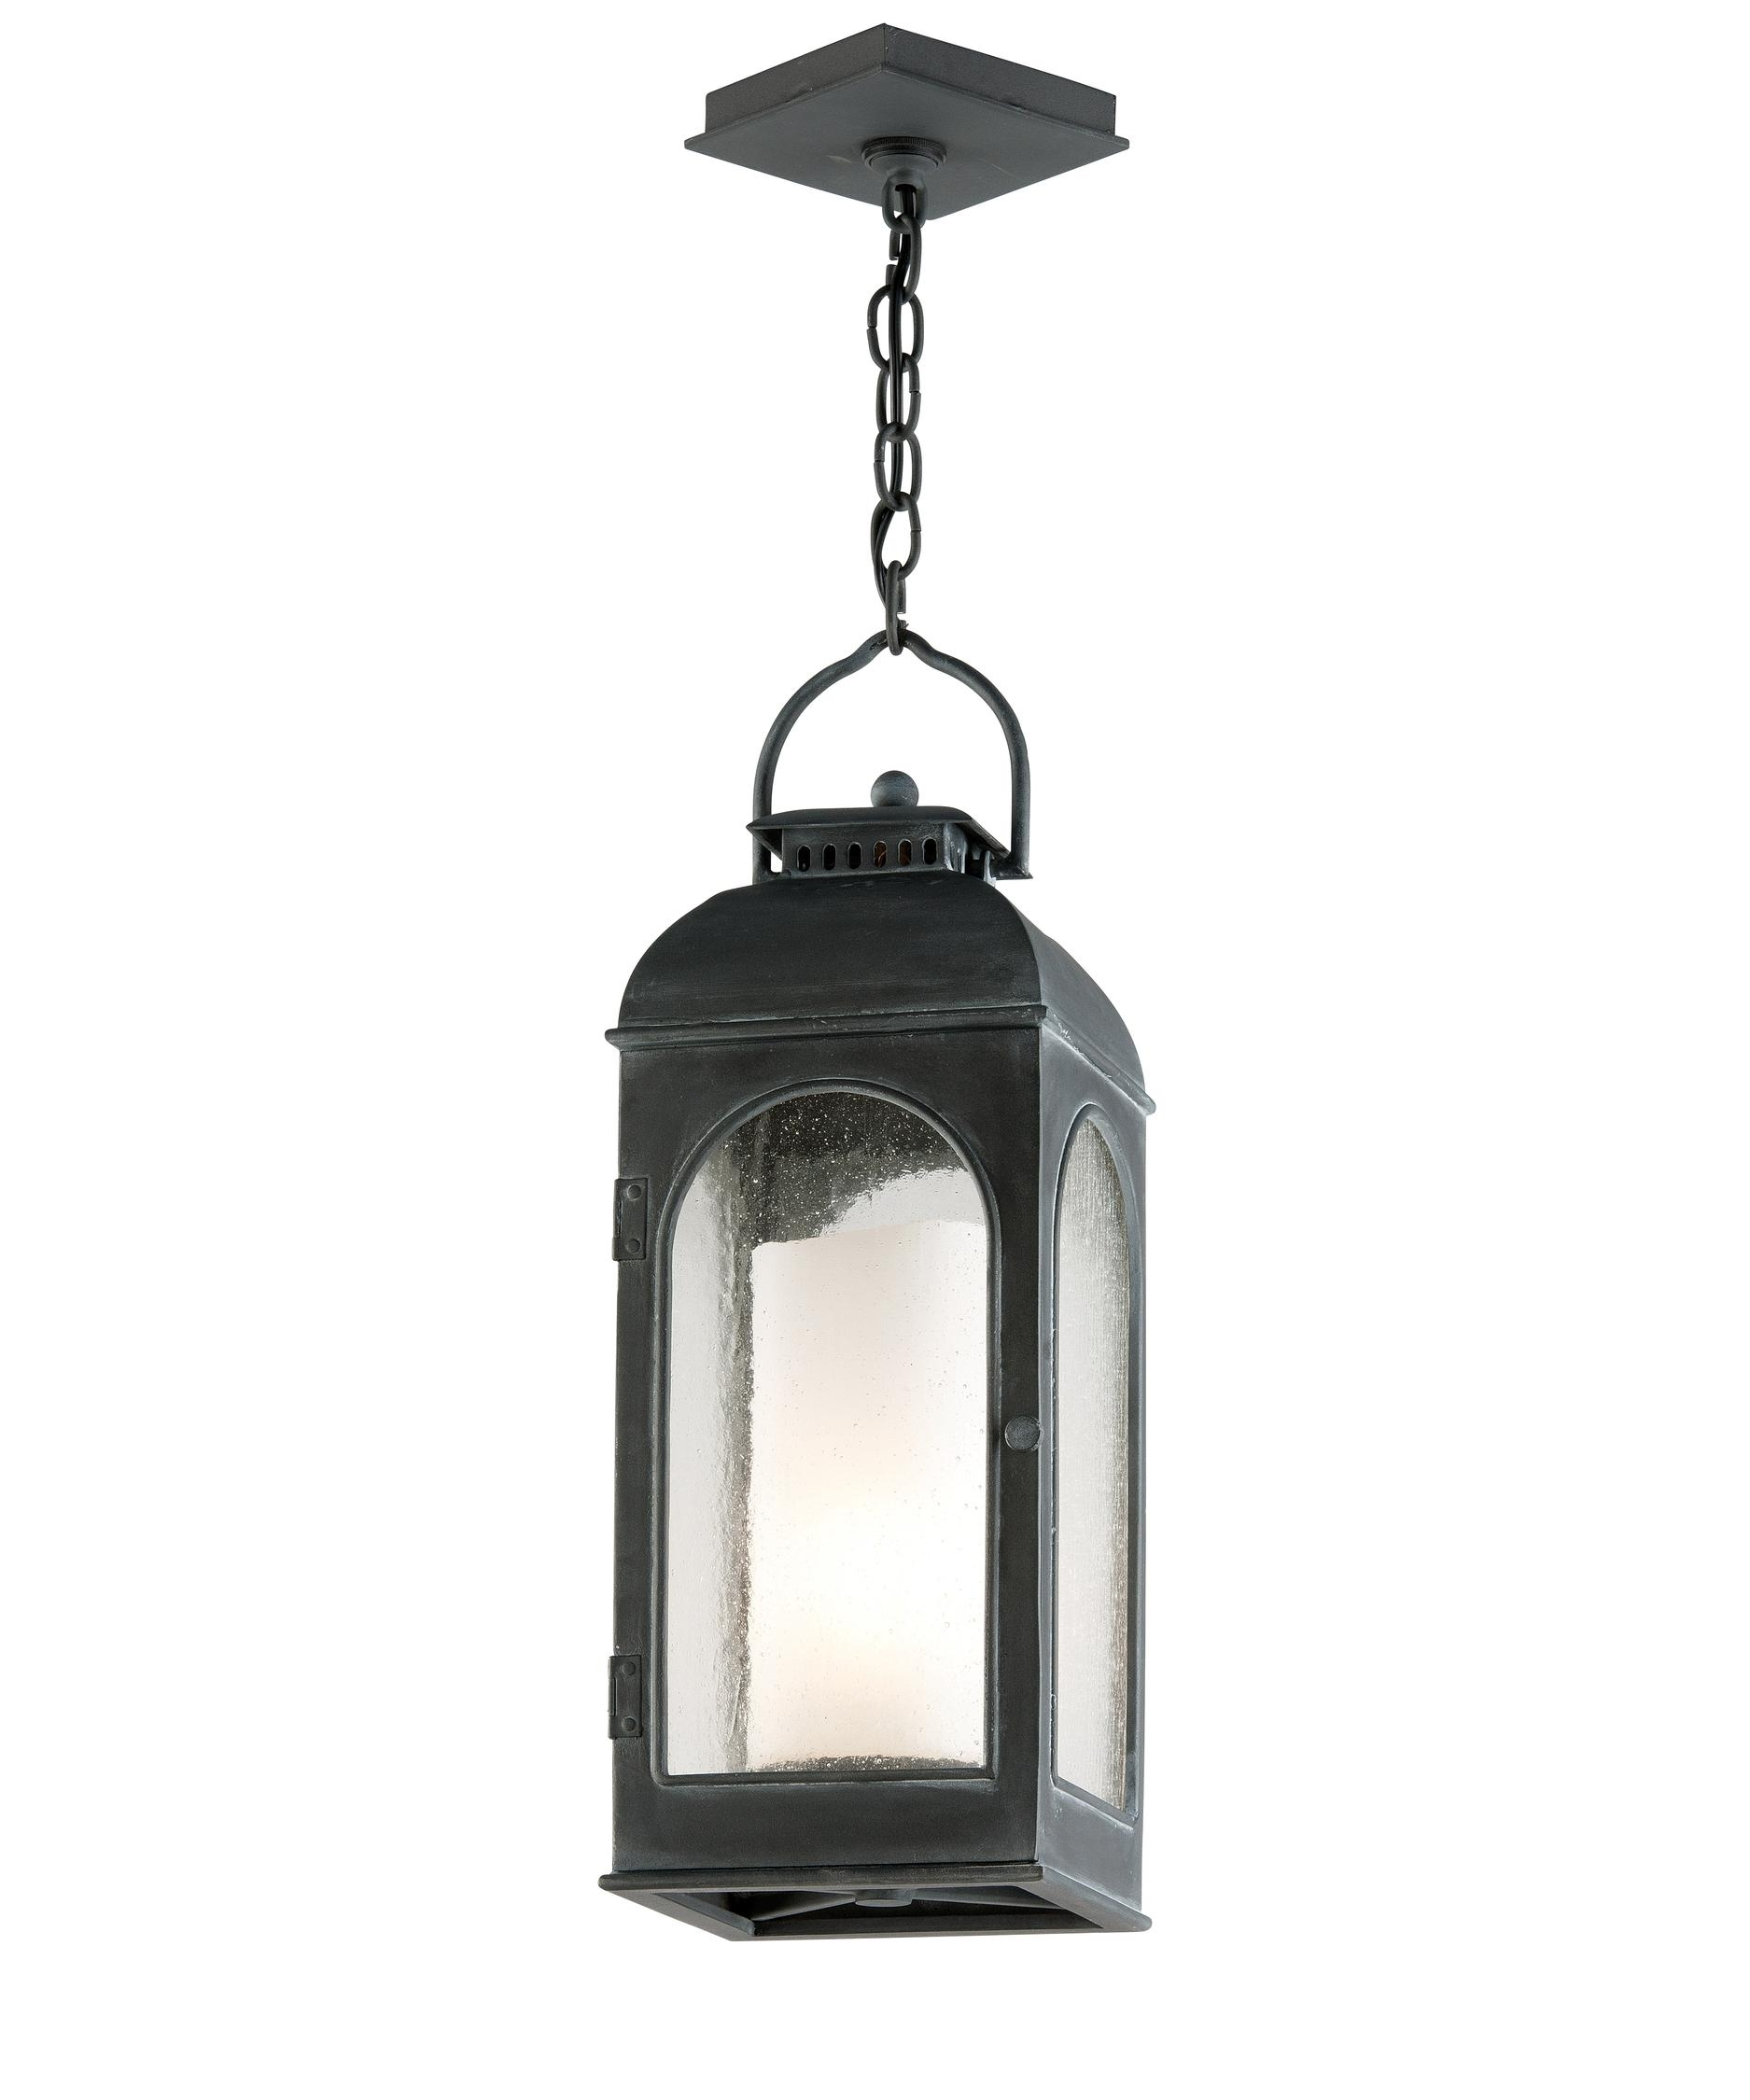 Troy Lighting F3287 Derby 8 Inch Wide 1 Light Outdoor Hanging Throughout Outdoor Hanging Lanterns For Candles (#12 of 15)